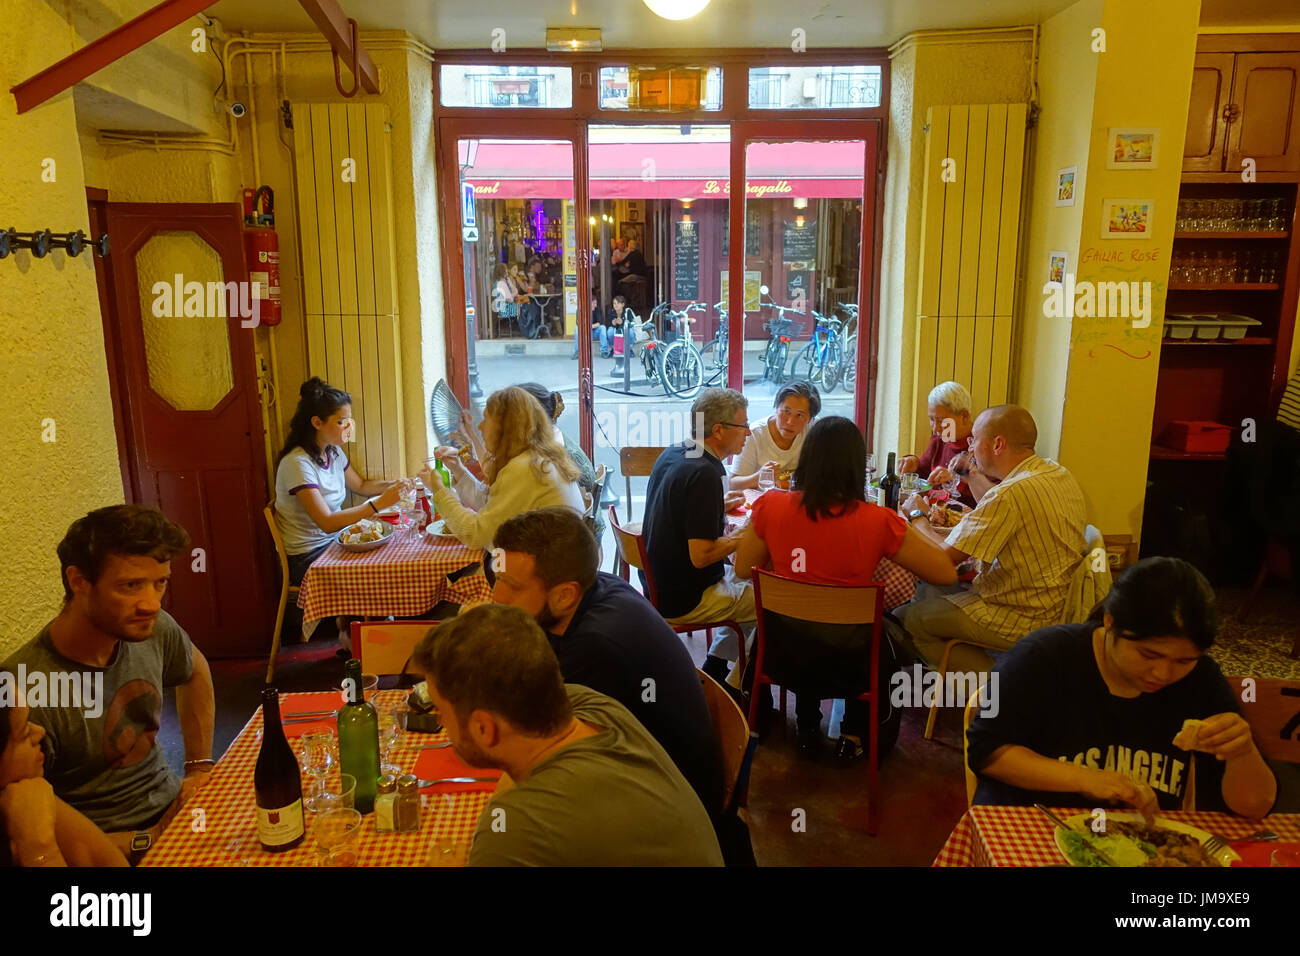 Baskisches stock photos baskisches stock images alamy - Restaurant butte aux cailles ...